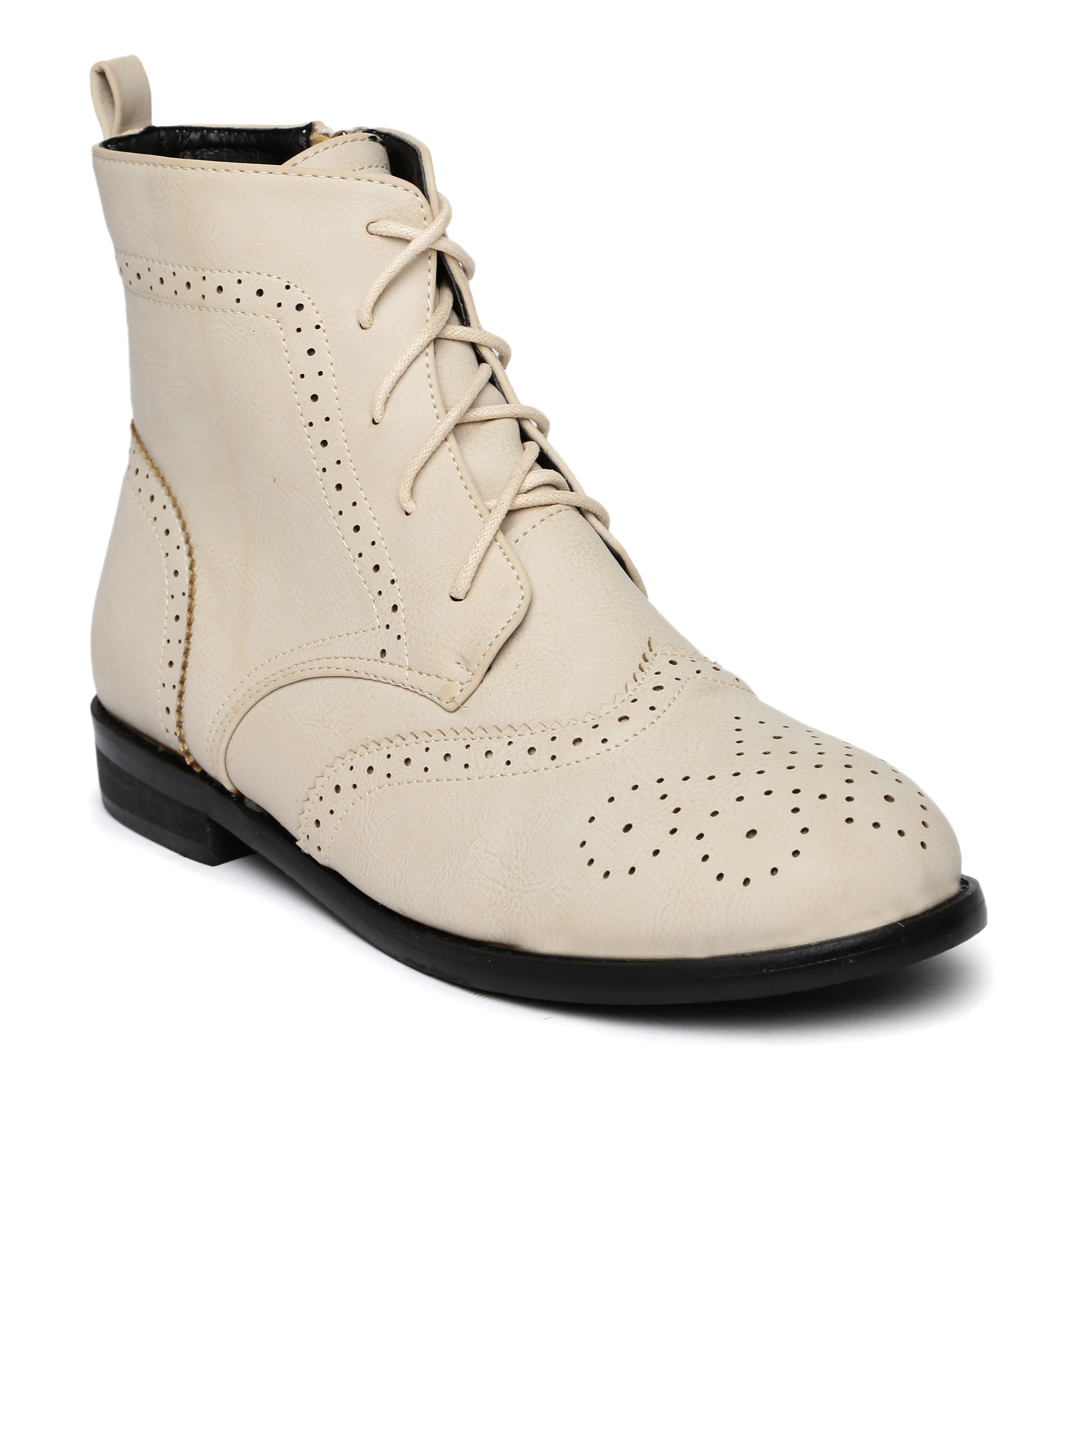 31-types-of-boots-Beige-Perforations-High-Tops-Flat-Boots